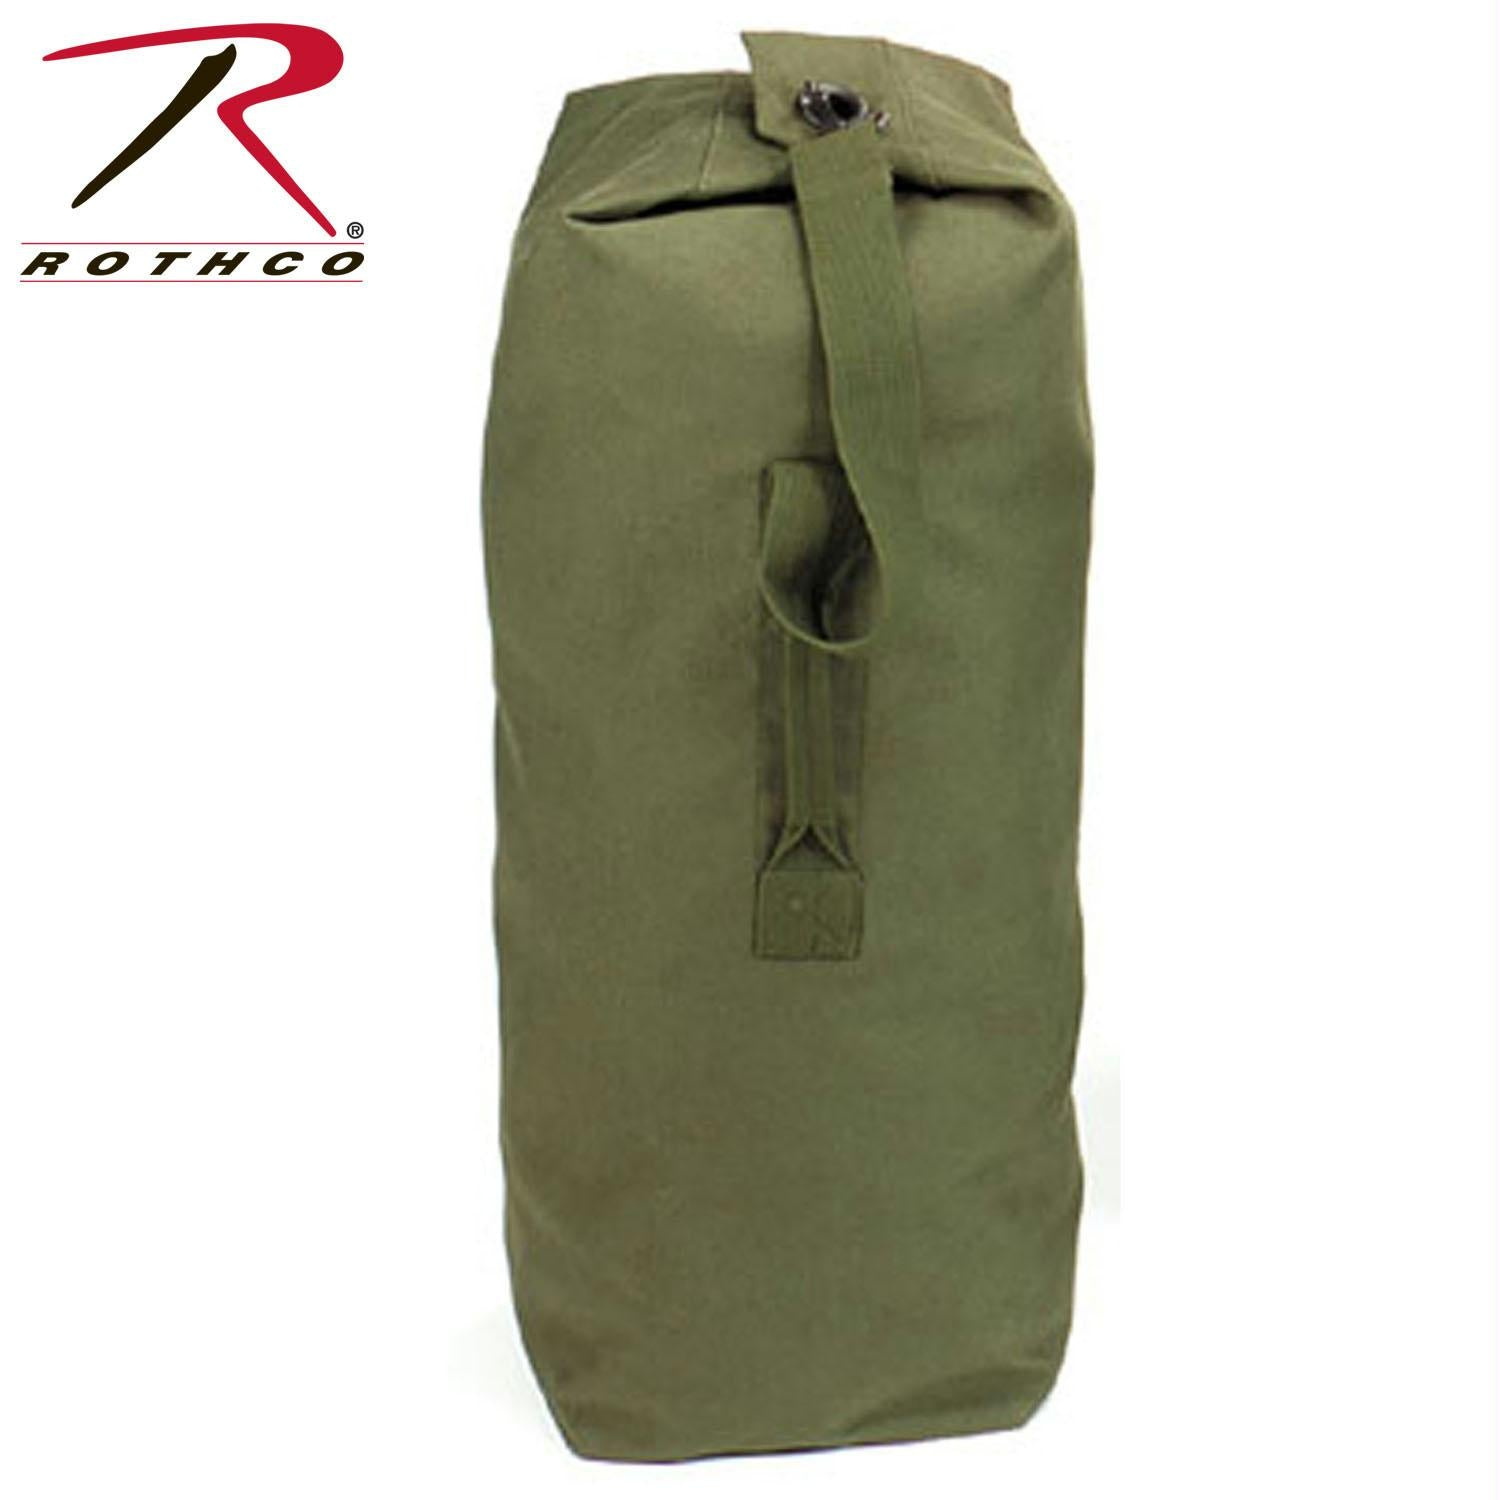 Rothco Heavyweight Top Load Canvas Duffle Bag - Olive Drab / 21